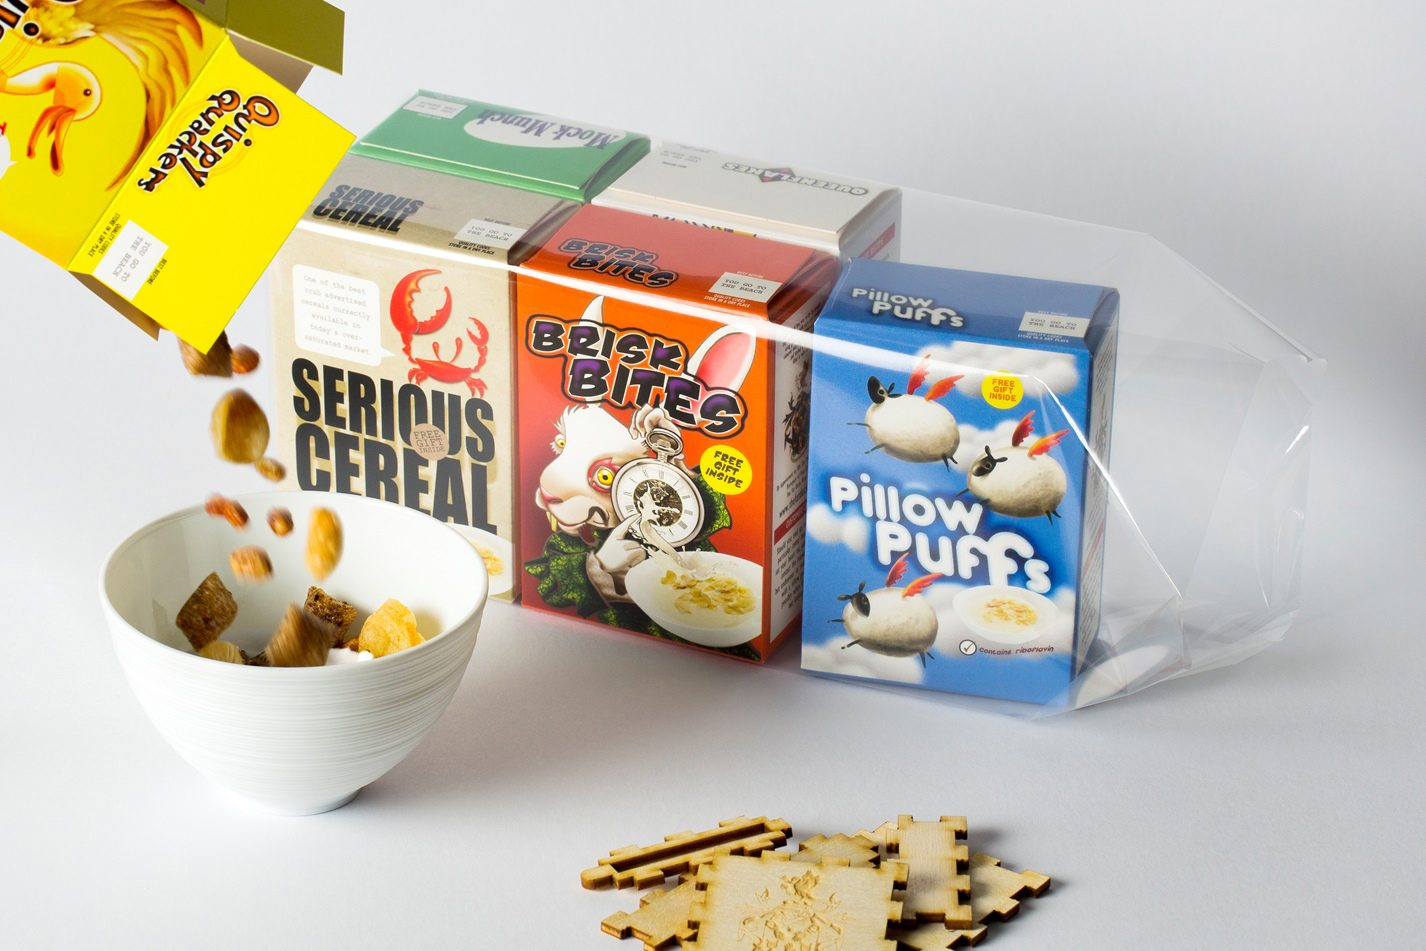 A dish at the Fat Duck – mini cereal packets